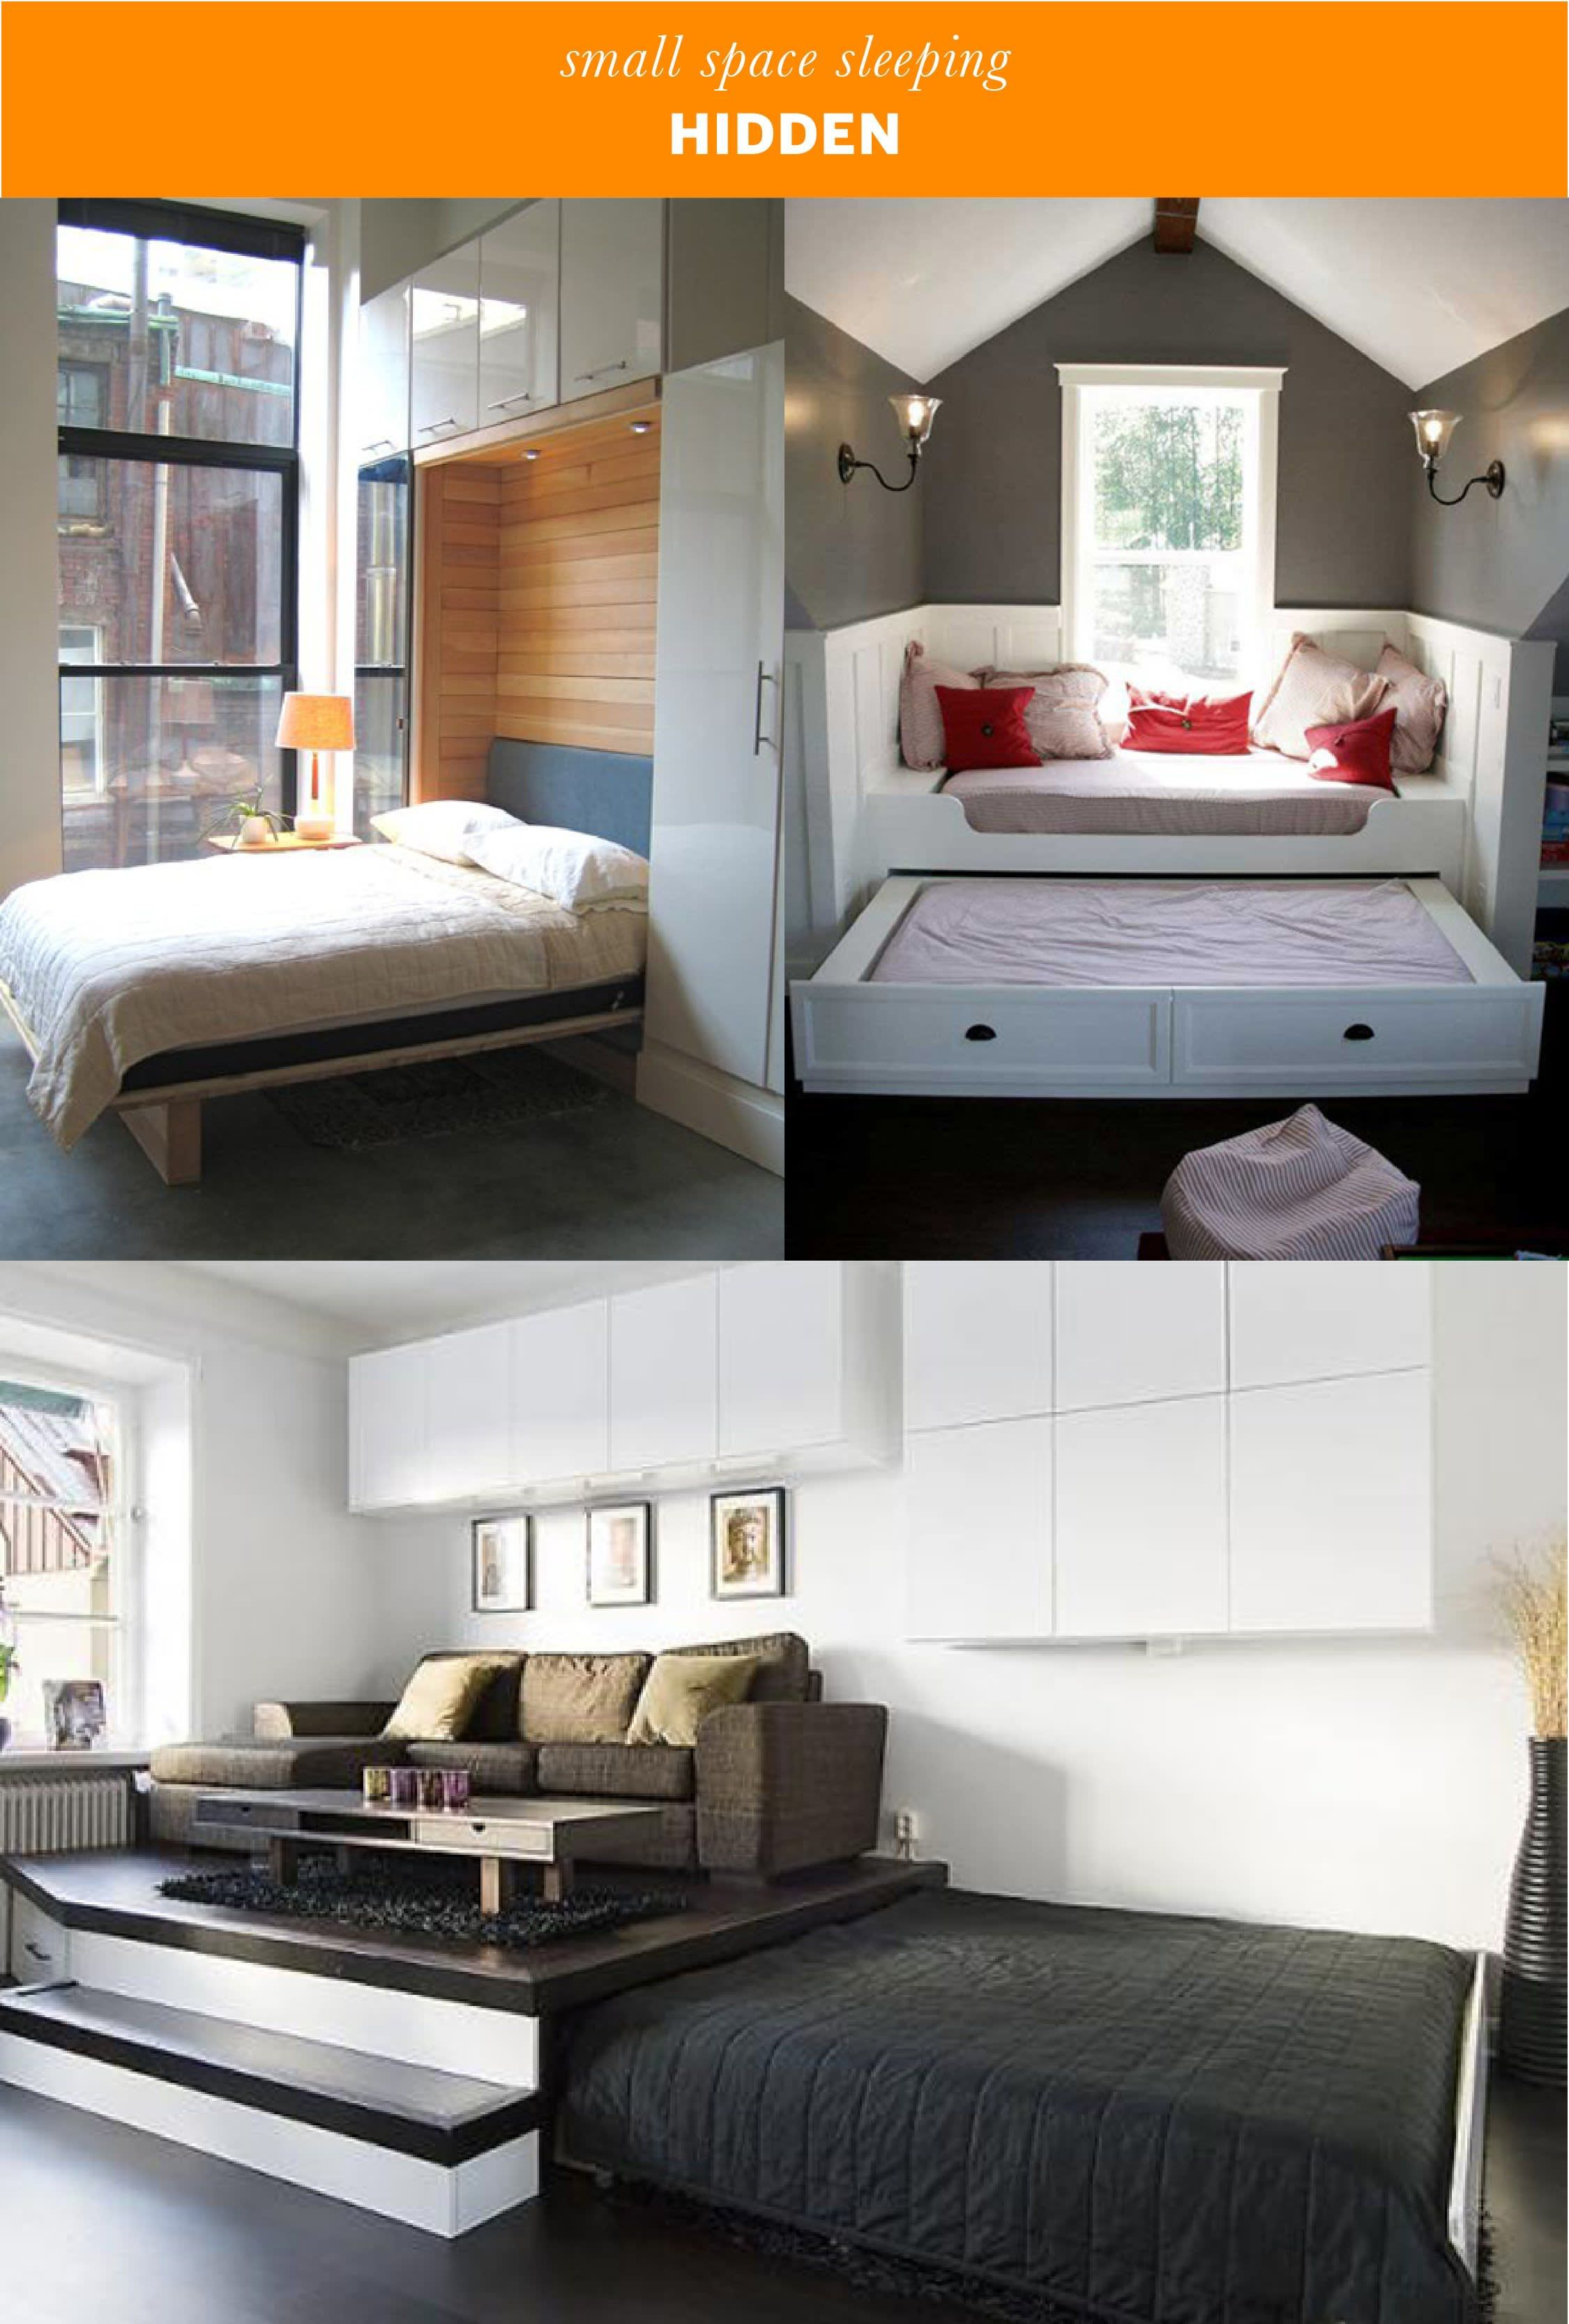 Small Space Sleeping Solutions | small apt | Living room ...